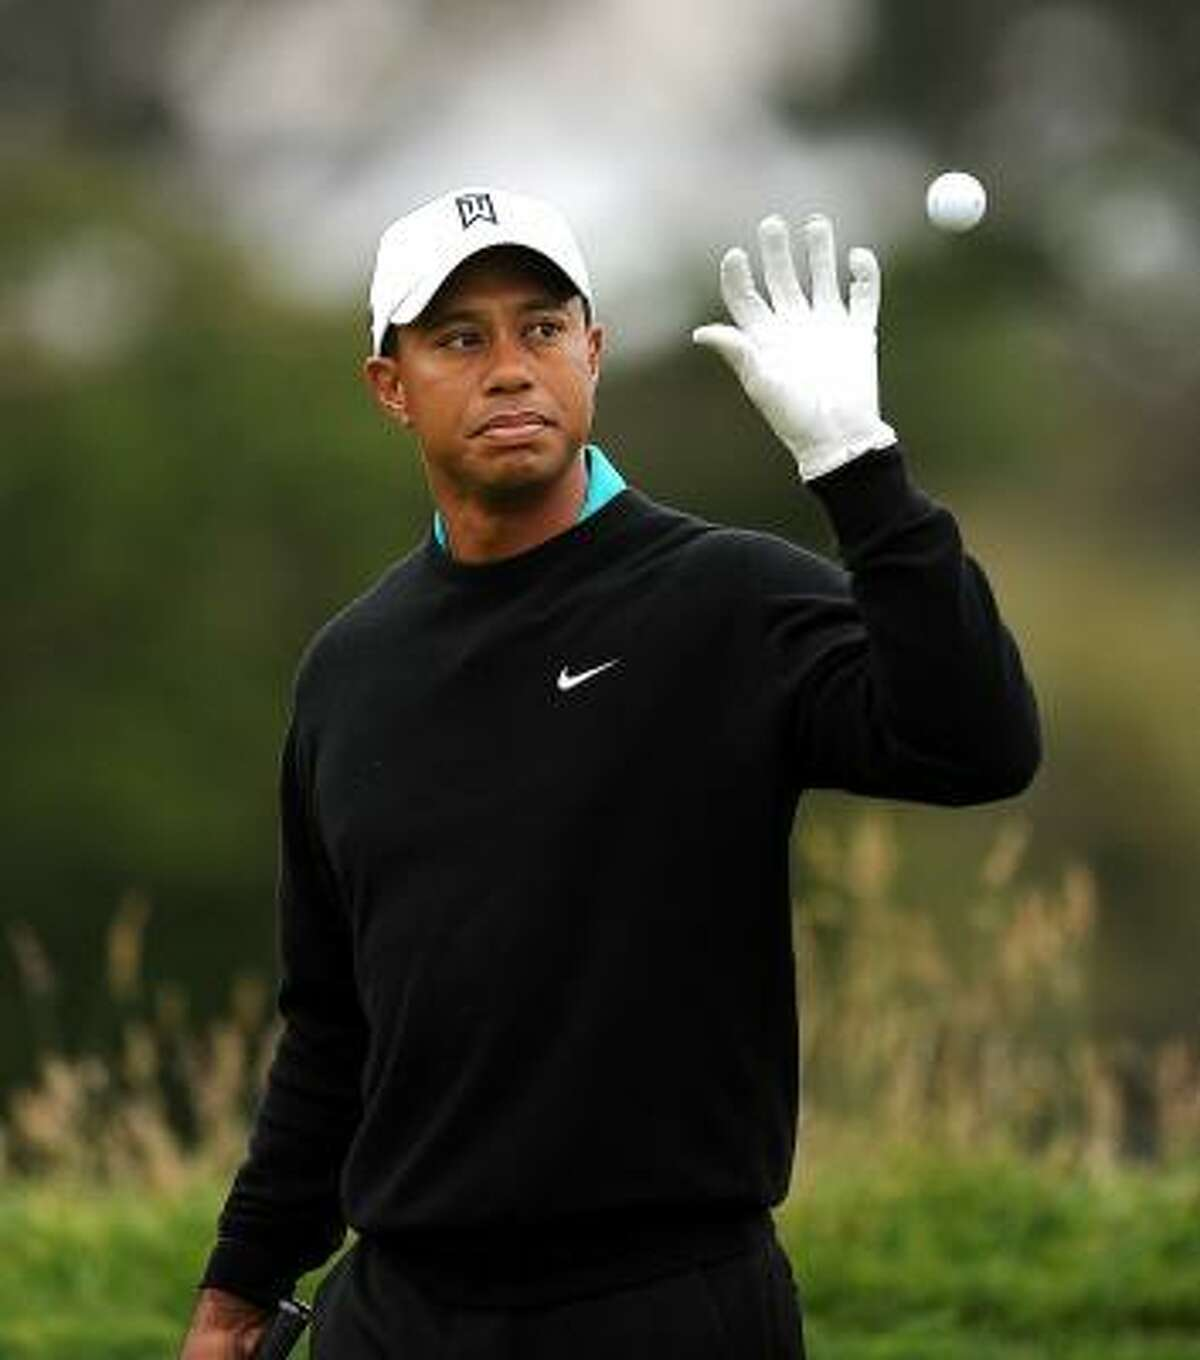 Tiger Woods shot a 1-over 72 in the second round to finish seven shots behind leader Graeme McDowell of Northern Ireland.